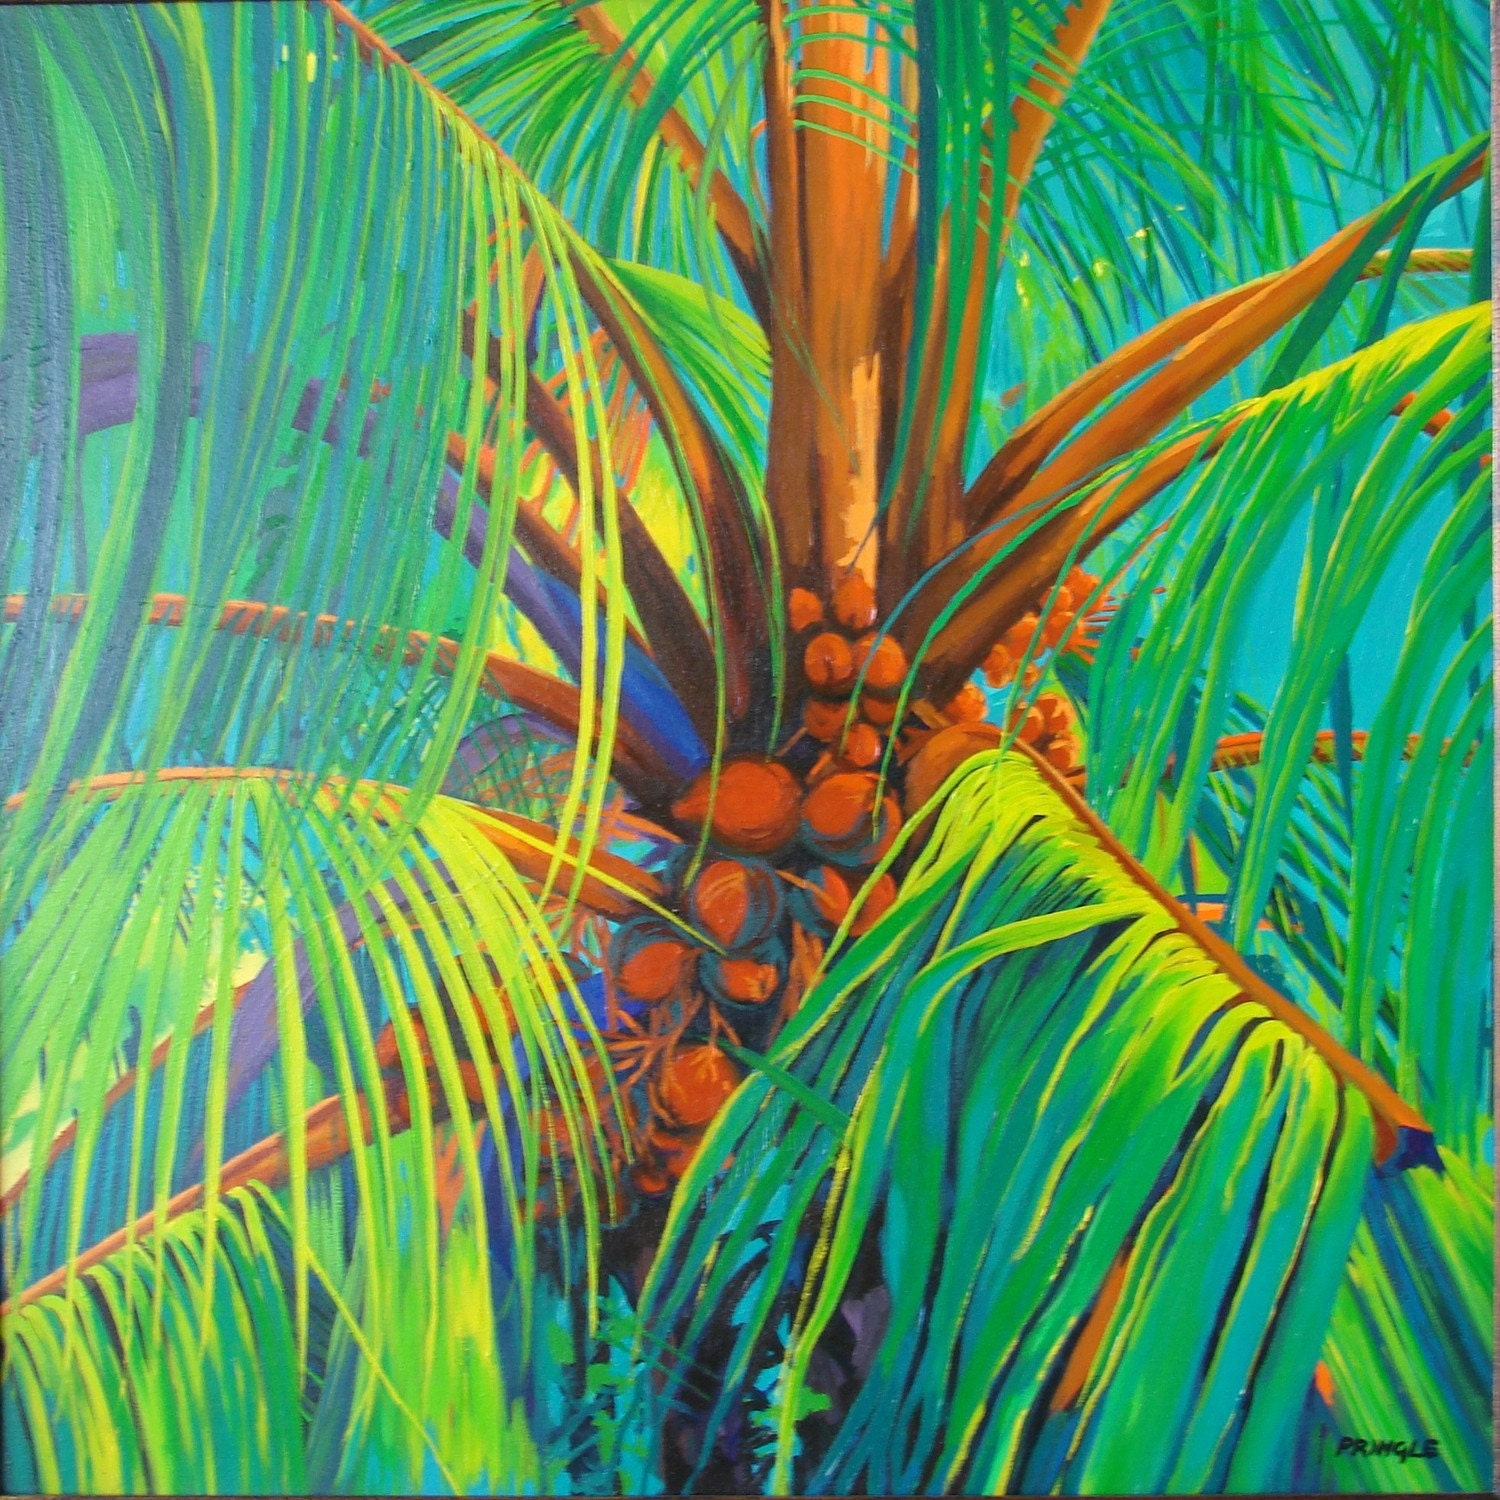 Coconut Palms by Sheila Pringle